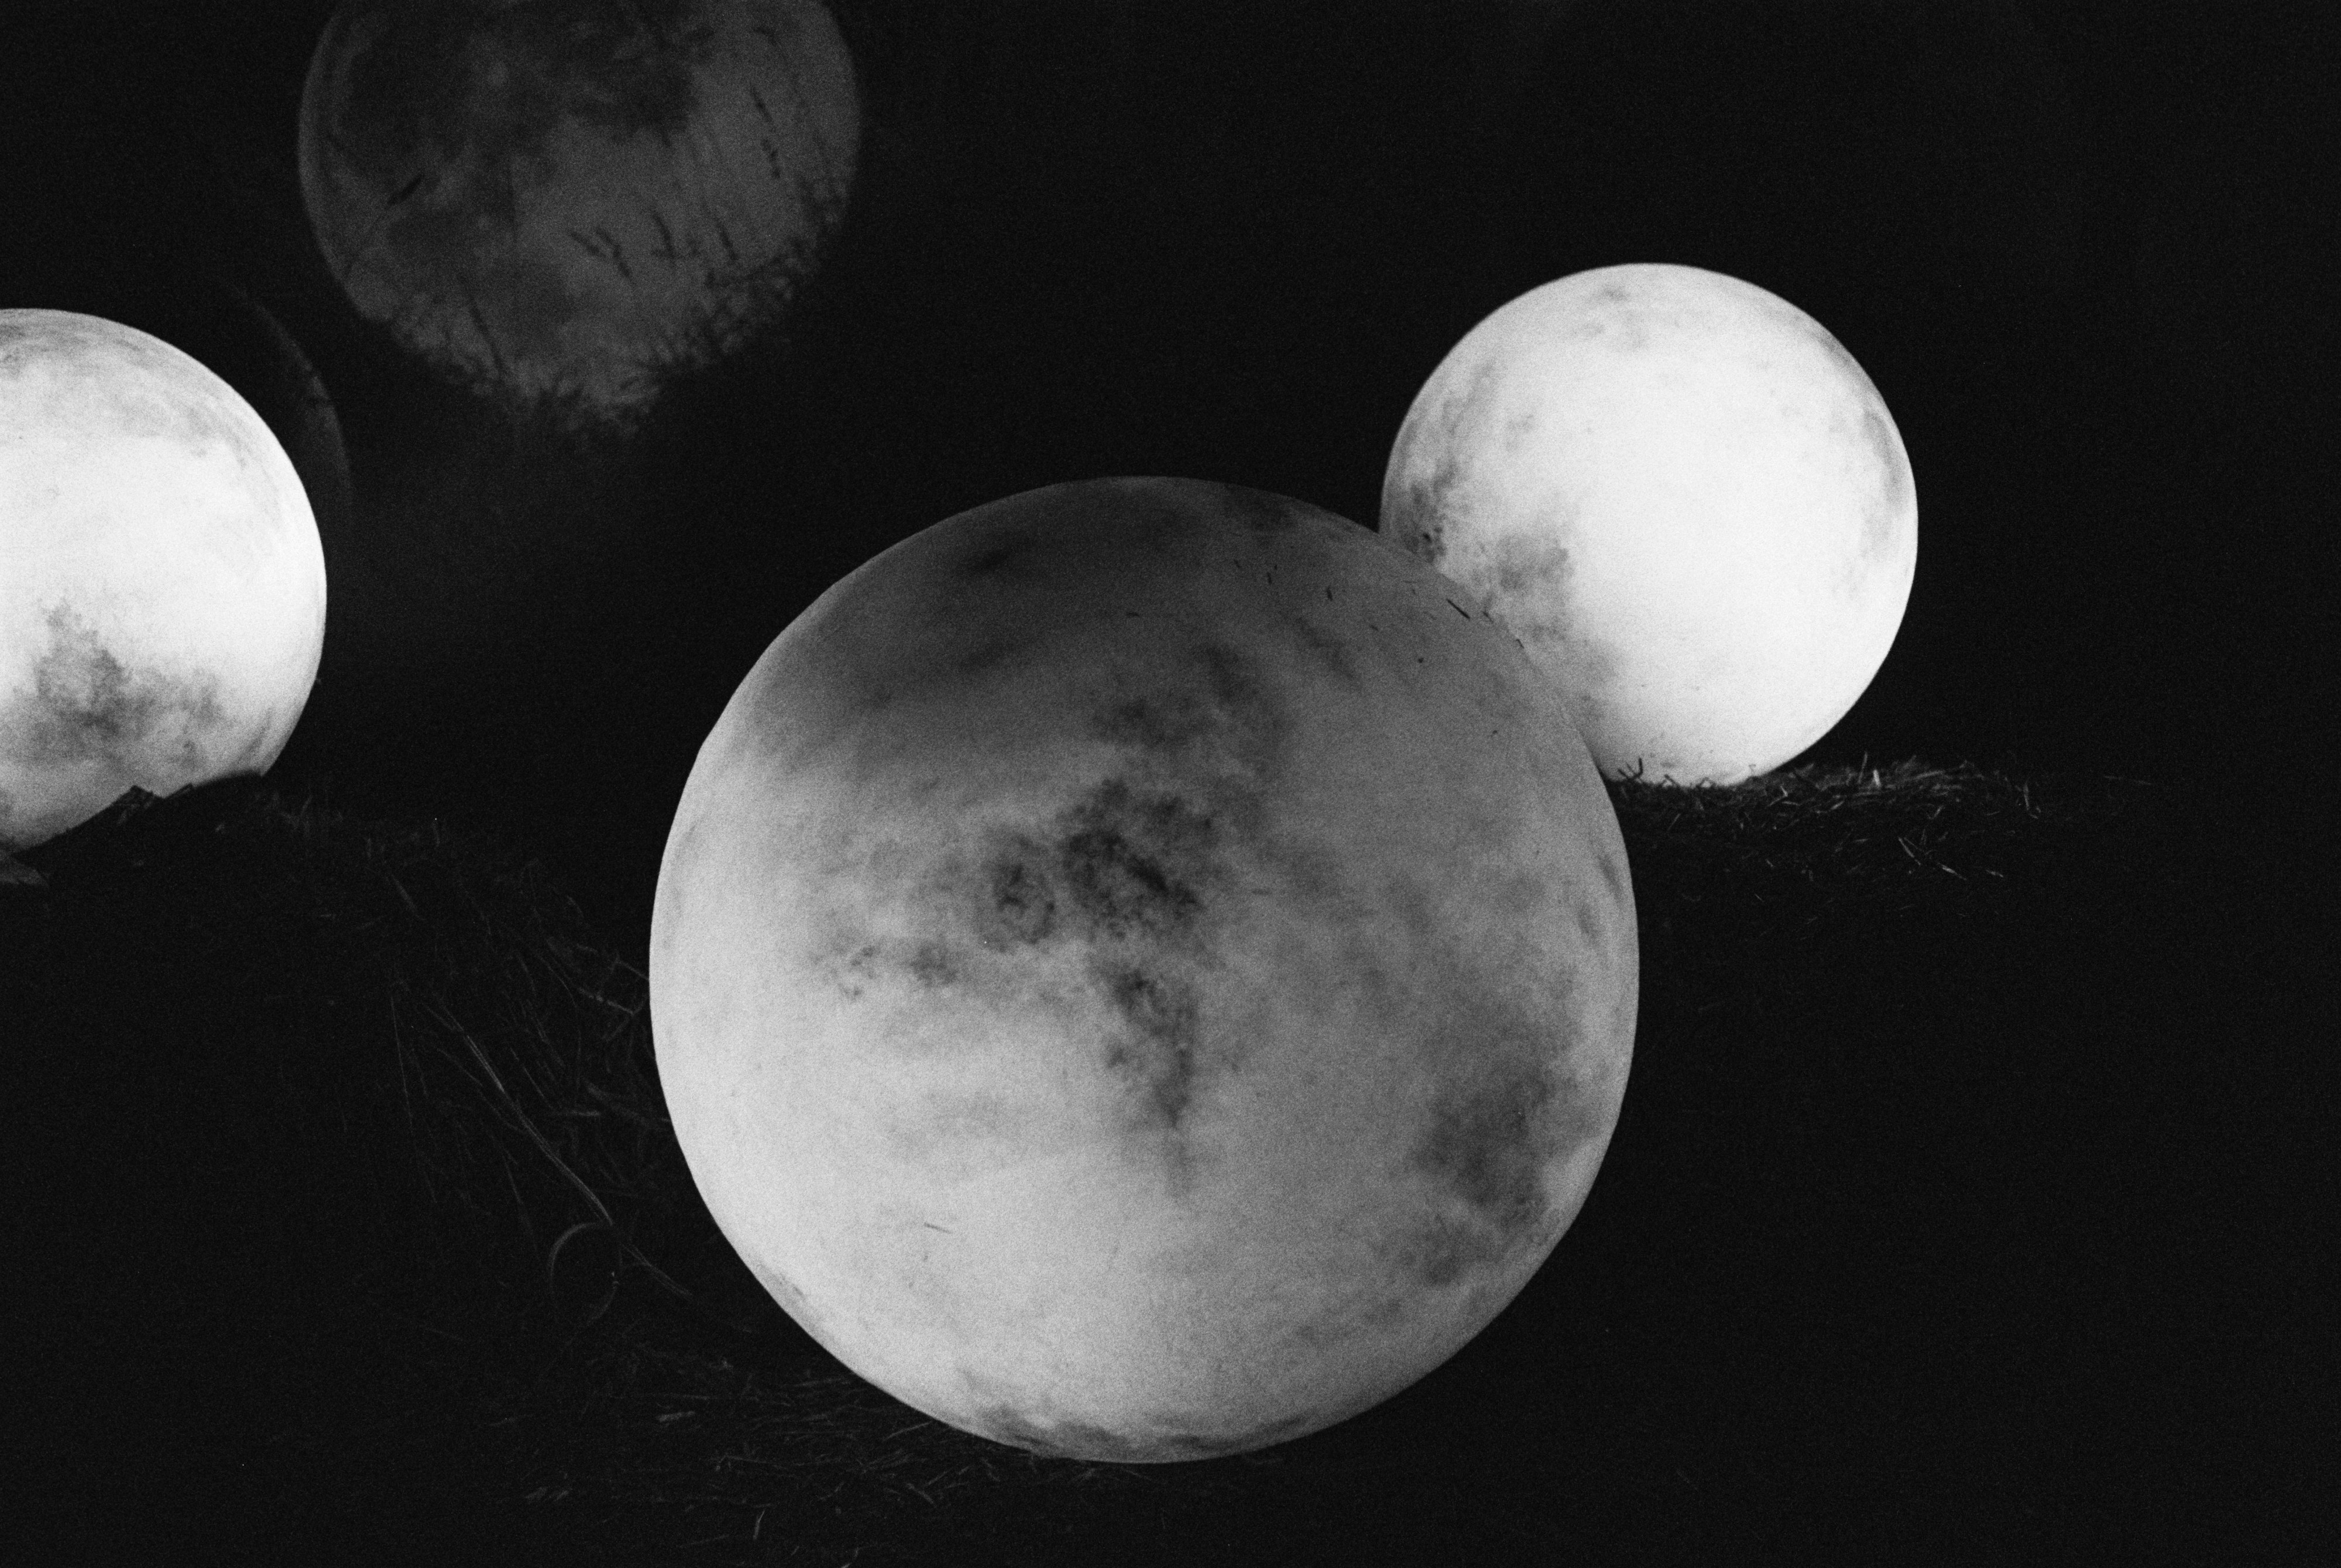 Black and white image of planets in space